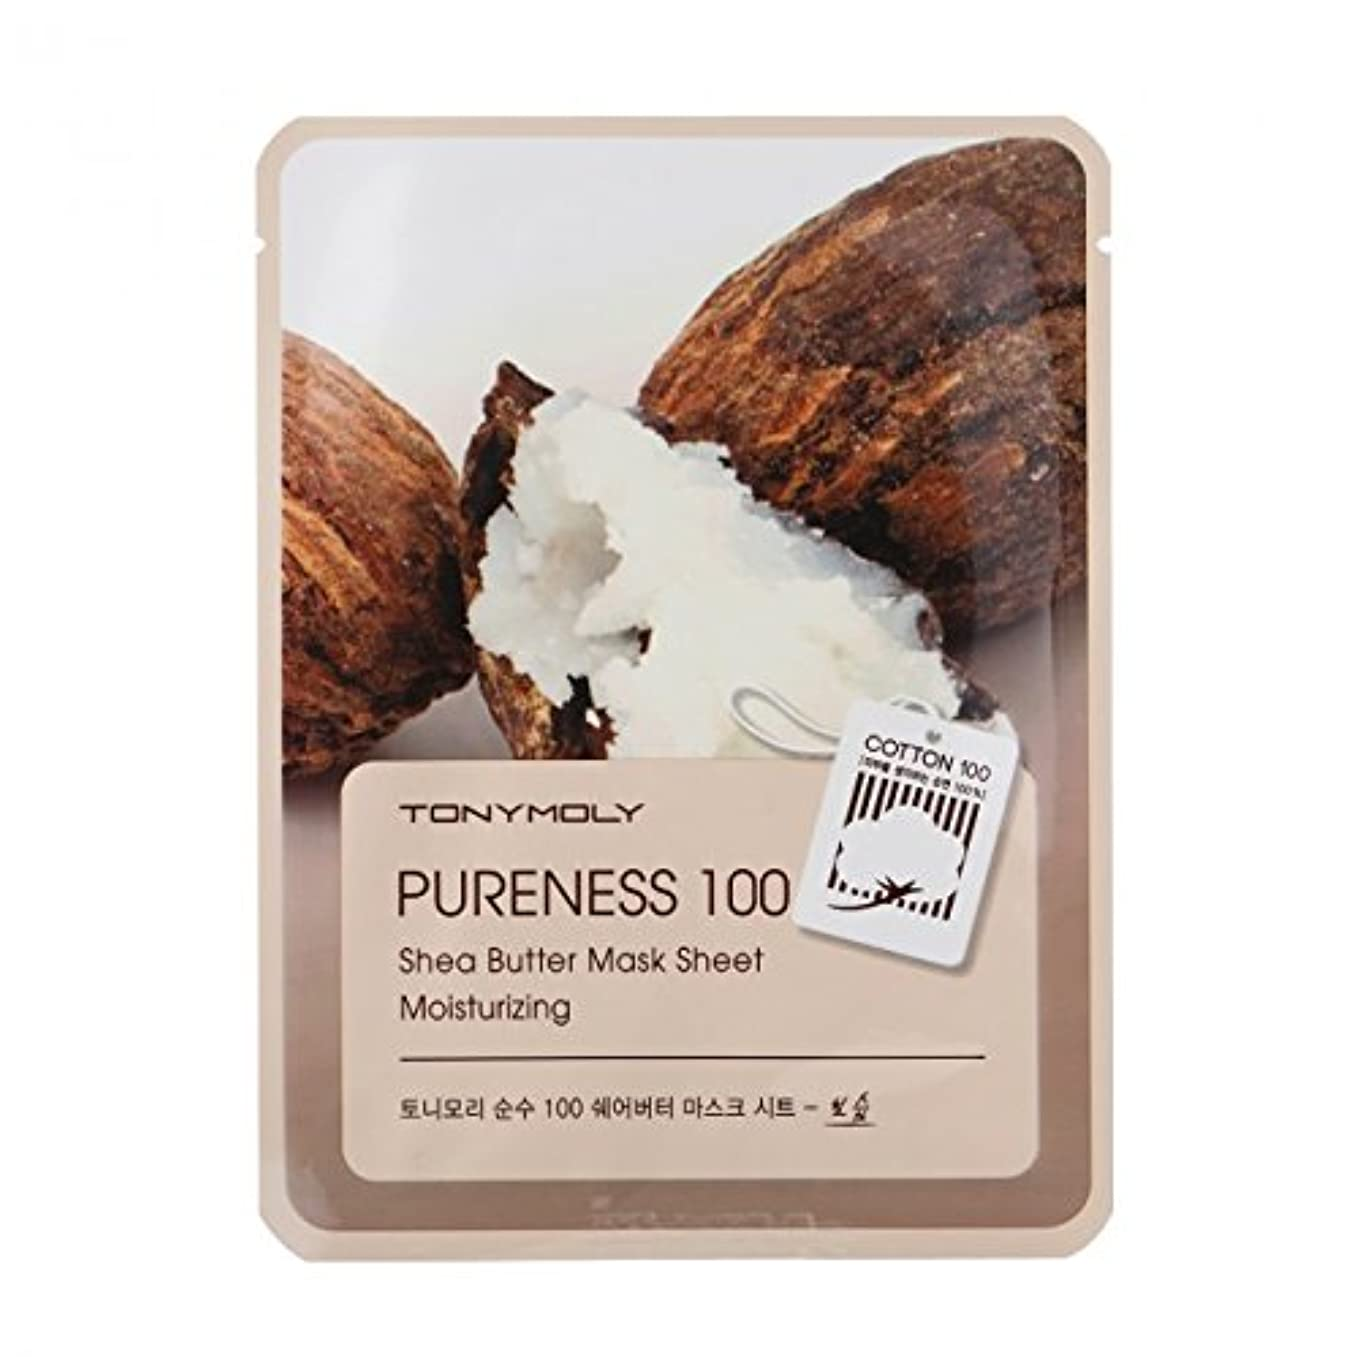 オーバーフロー特派員脳(6 Pack) TONYMOLY Pureness 100 Shea Butter Mask Sheet Moisturizing (並行輸入品)